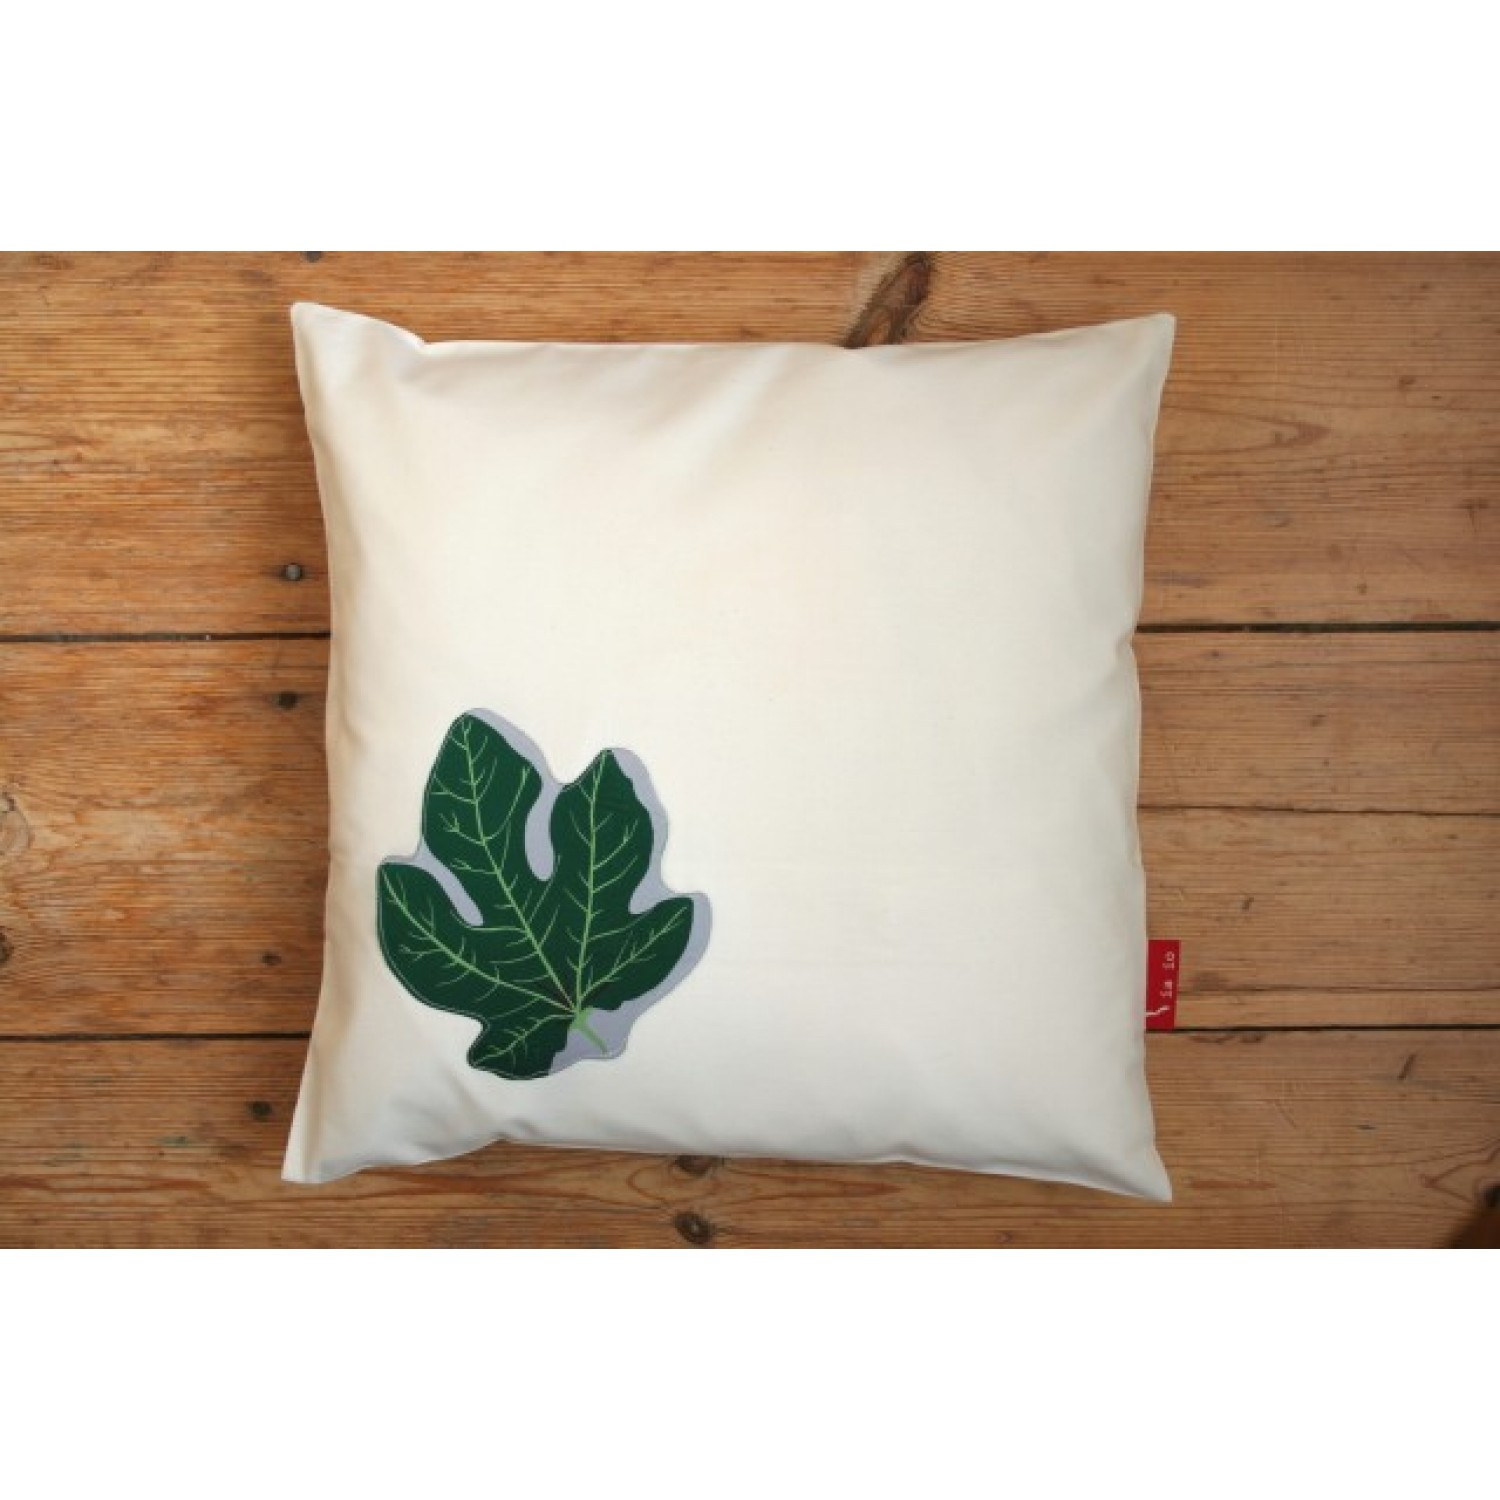 Kissen 40x40 Cushion Cover Figleaf Made Of Organic Cotton Satin With Or Without Filling 40x40 Cm